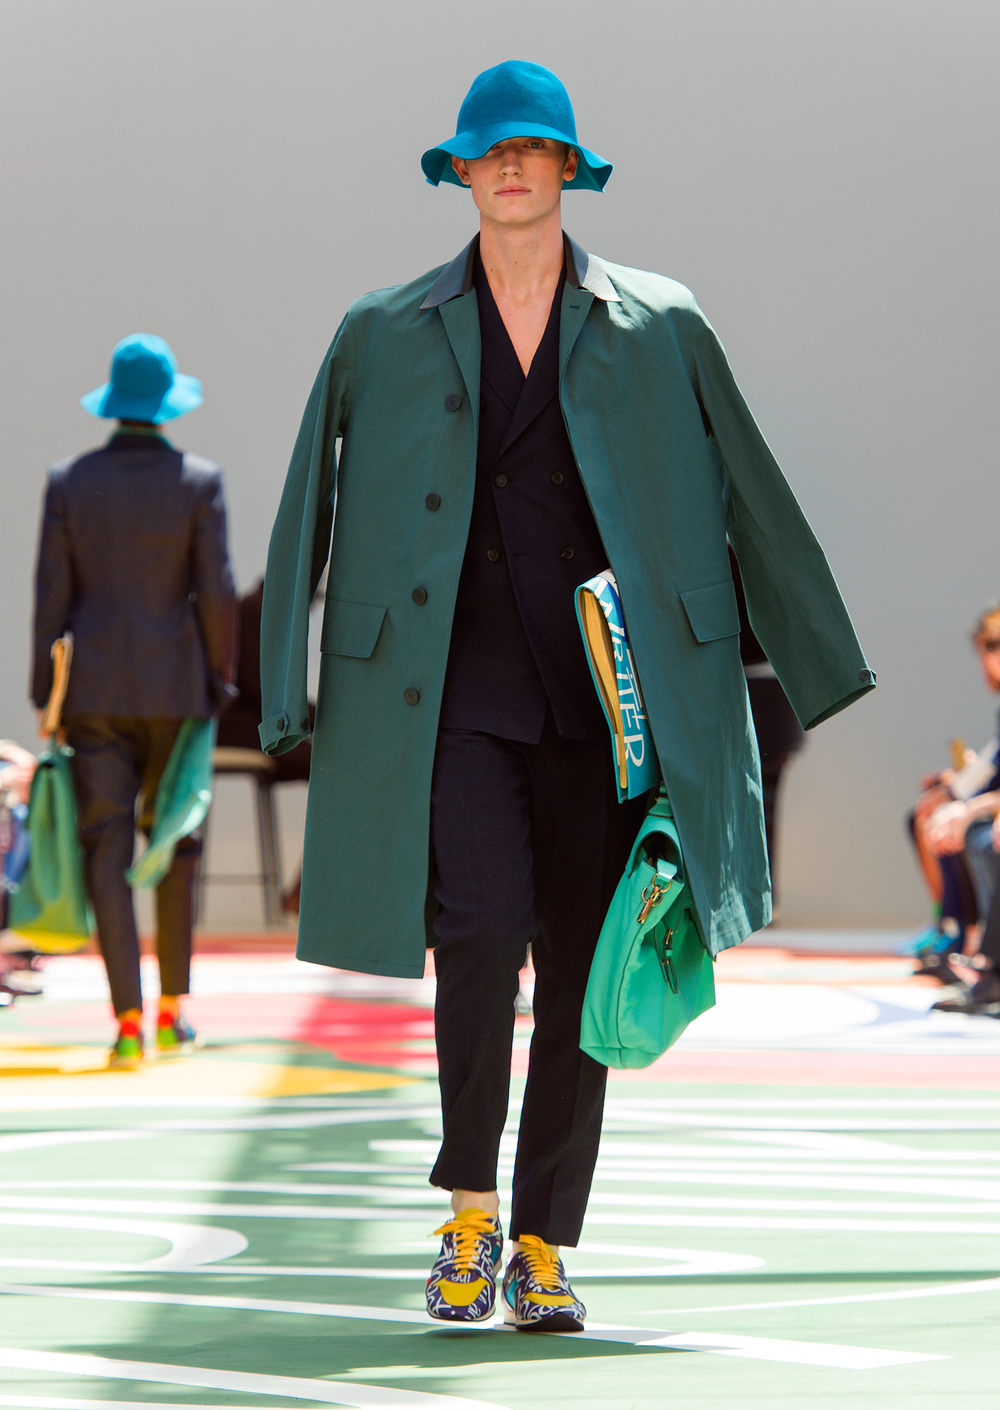 Burberry Prorsum Menswear Spring Summer 2015 Collection - Look 35.jpg